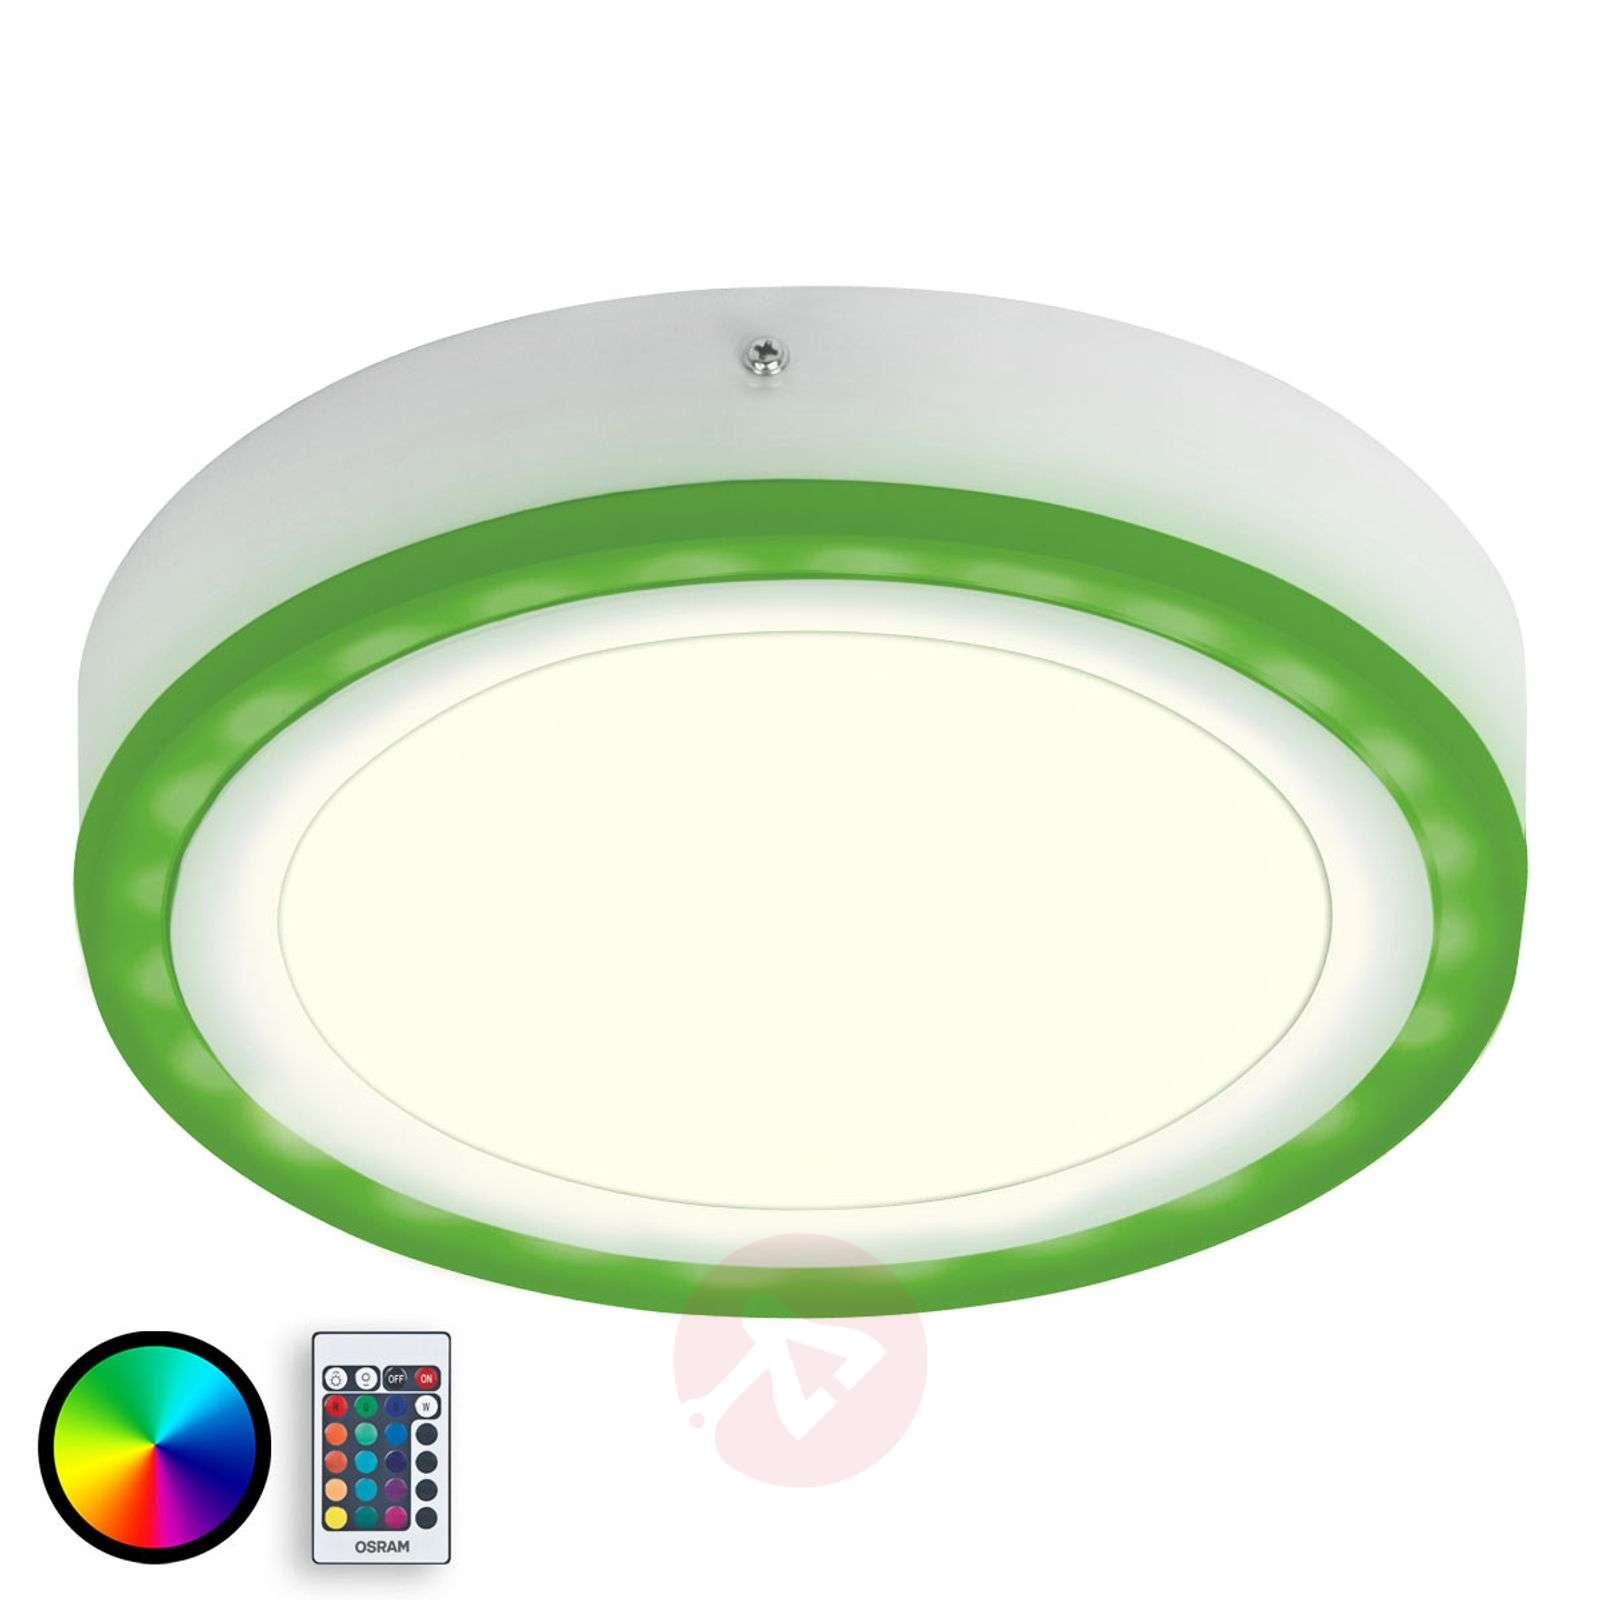 Color+White Round - lampa sufitowa LED, 36 W